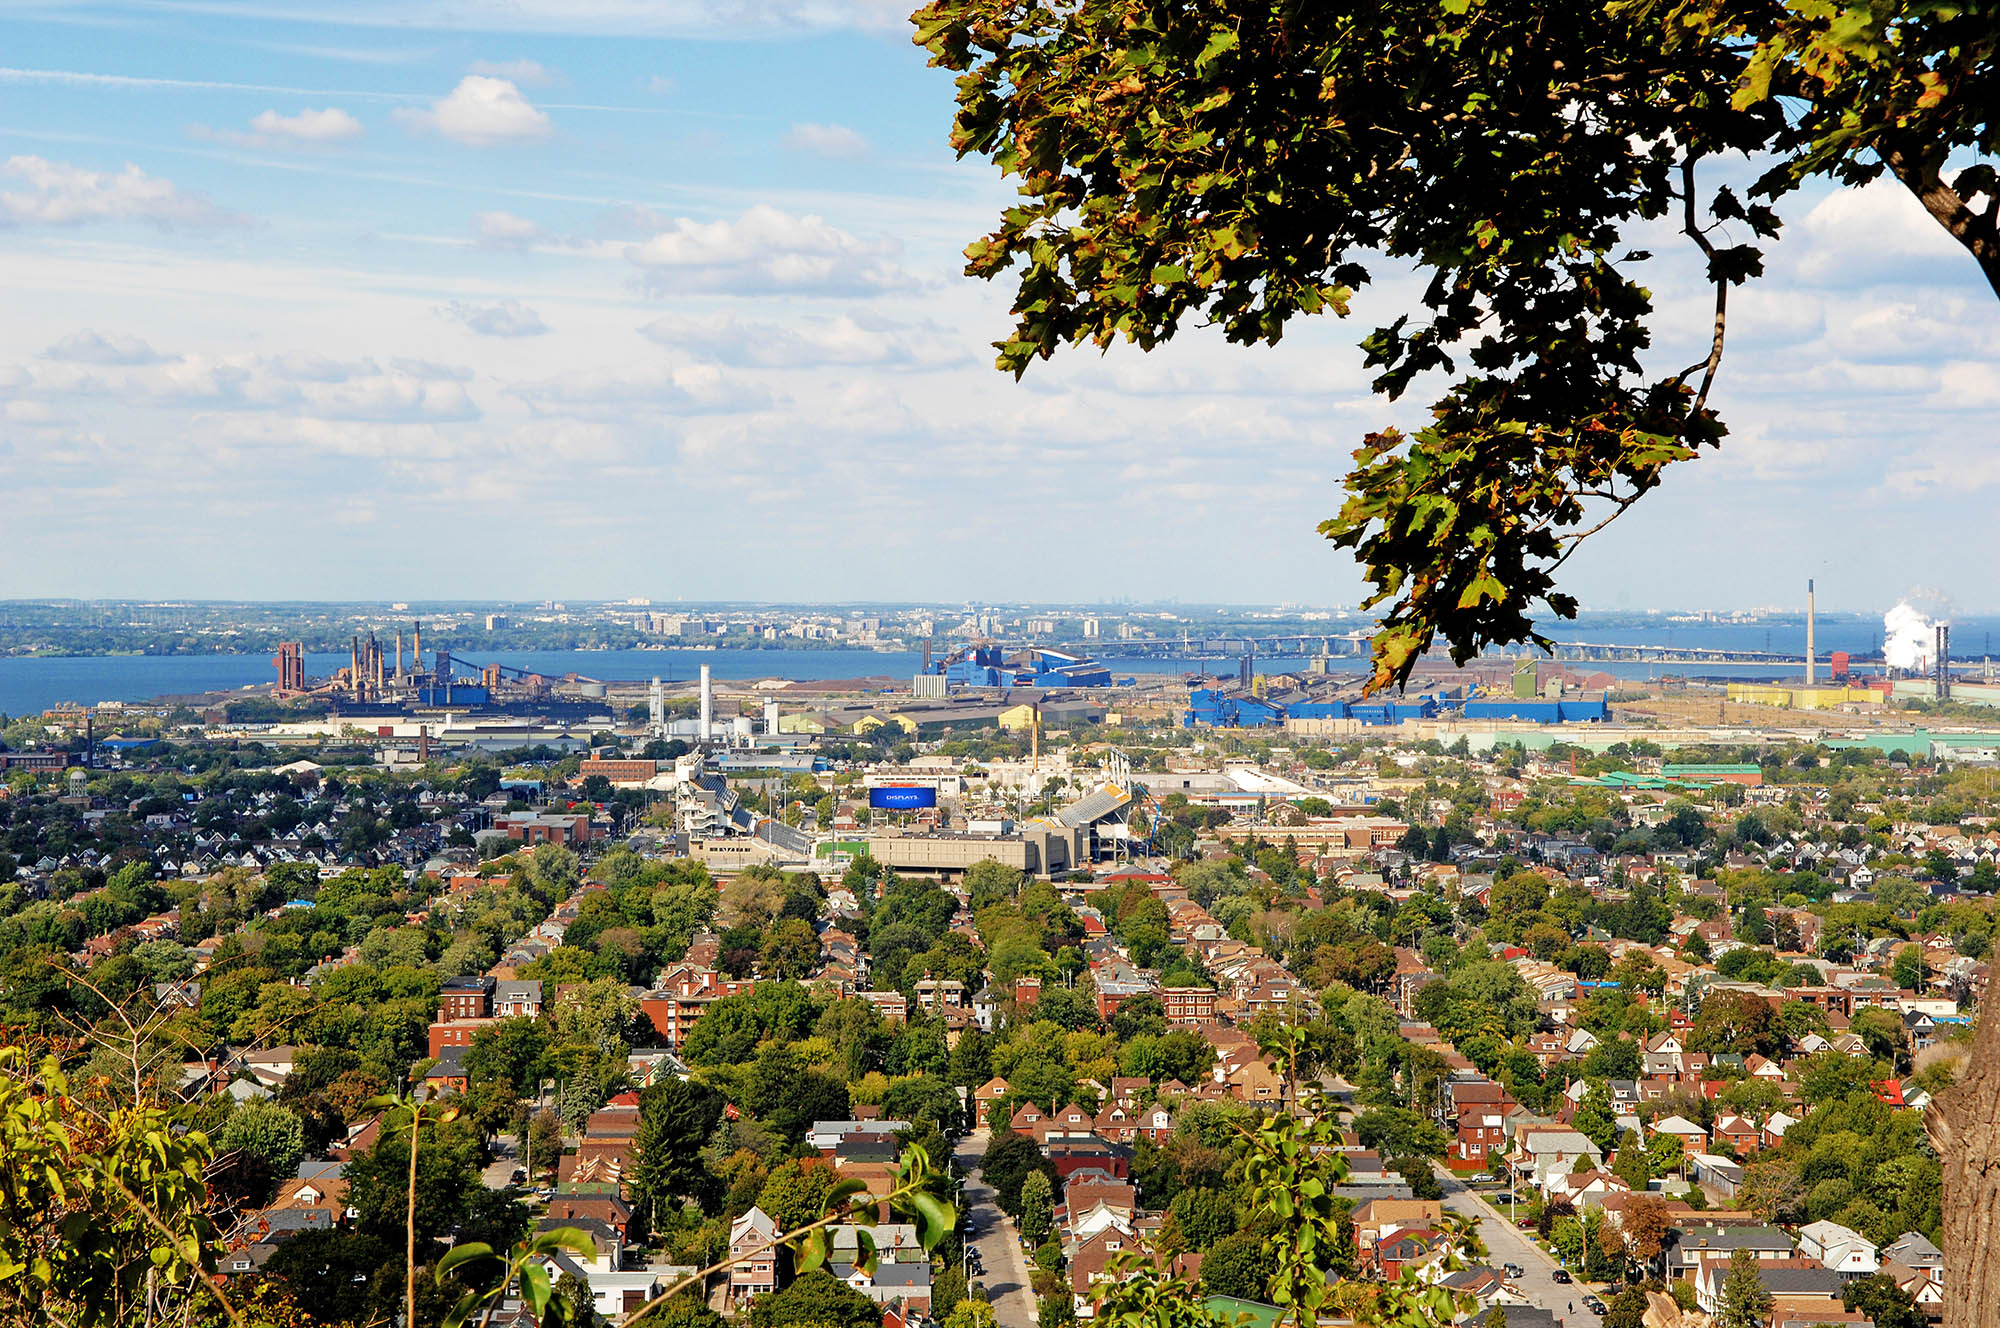 A picture of the lower city of Hamilton from the mountain, with the harbour in the background.